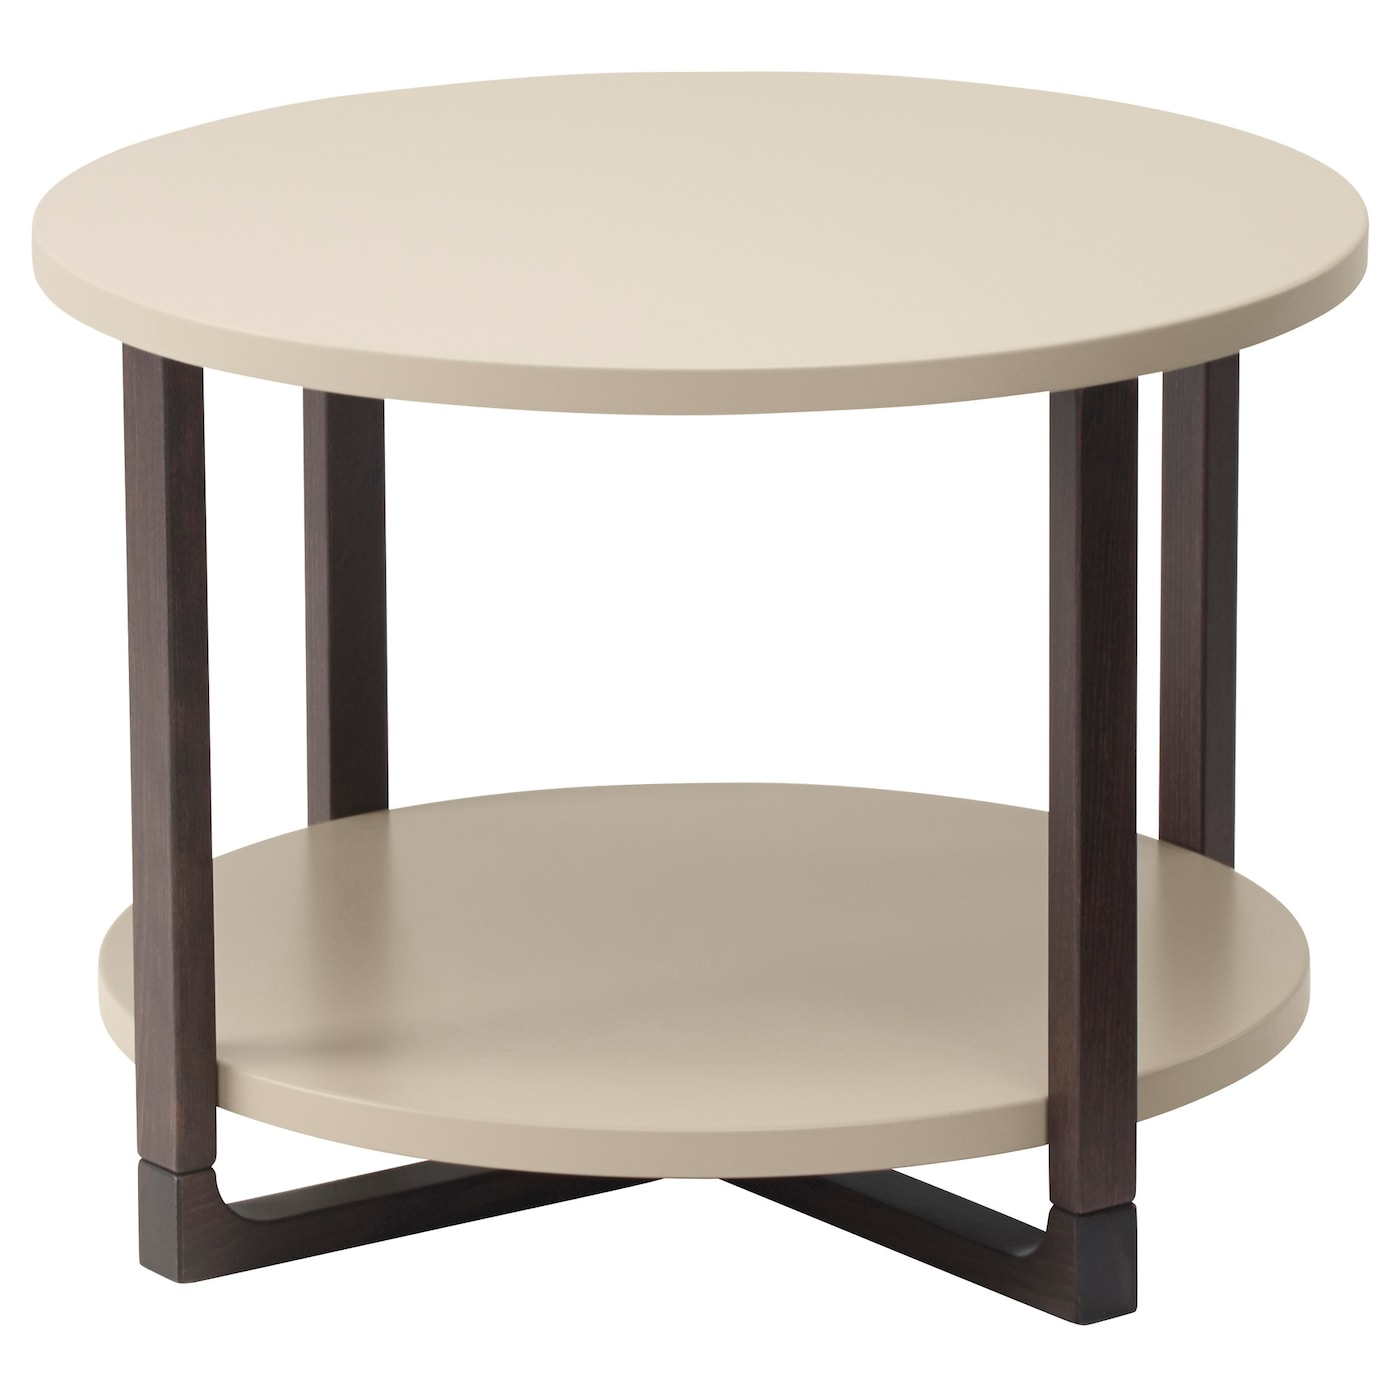 Rissna side table beige 60 cm ikea for Tables d appoint ikea